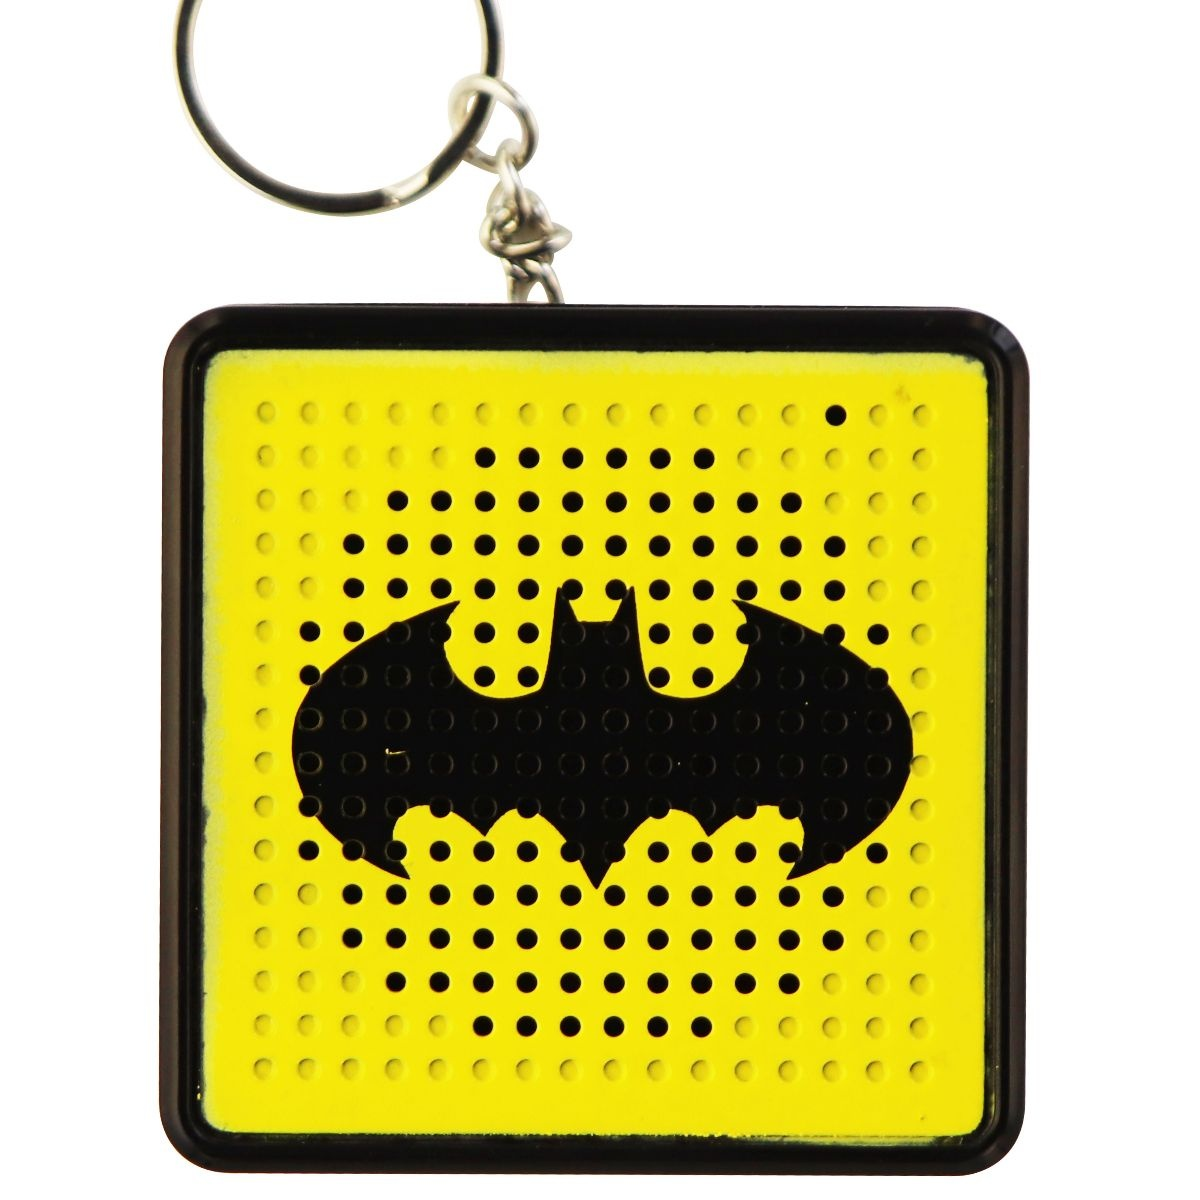 DC Comics MAGNAVOX Portable Bluetooth Wireless Speaker Key Chain - Batman